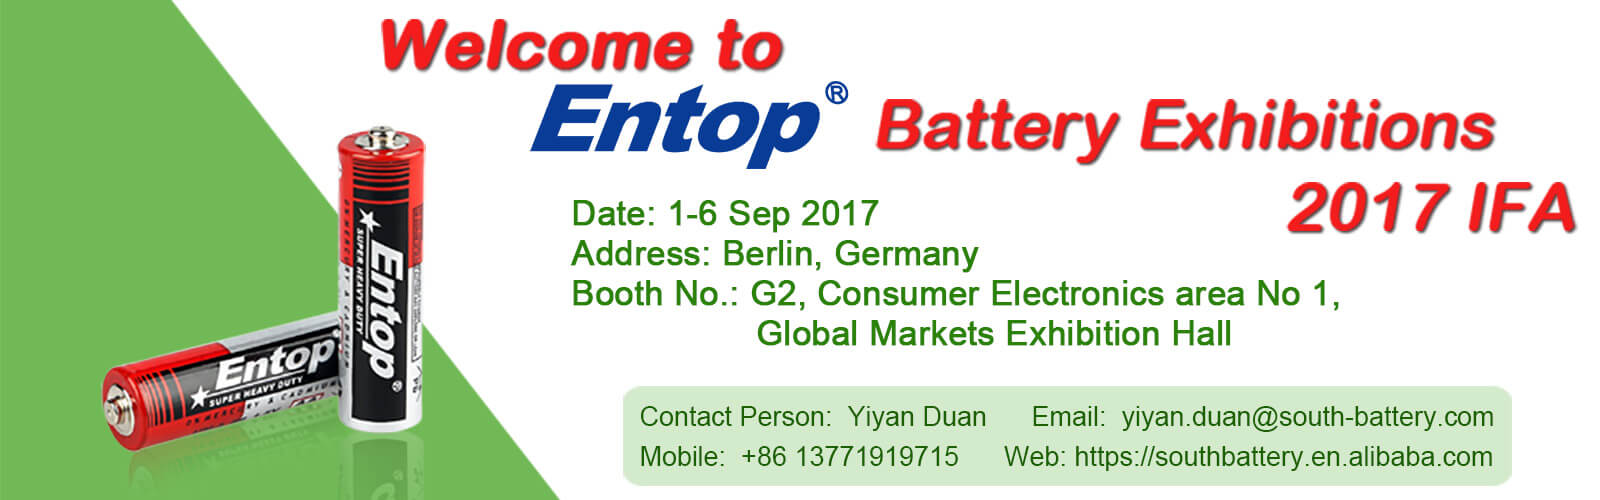 entop battery exhibitions 2017 IFA